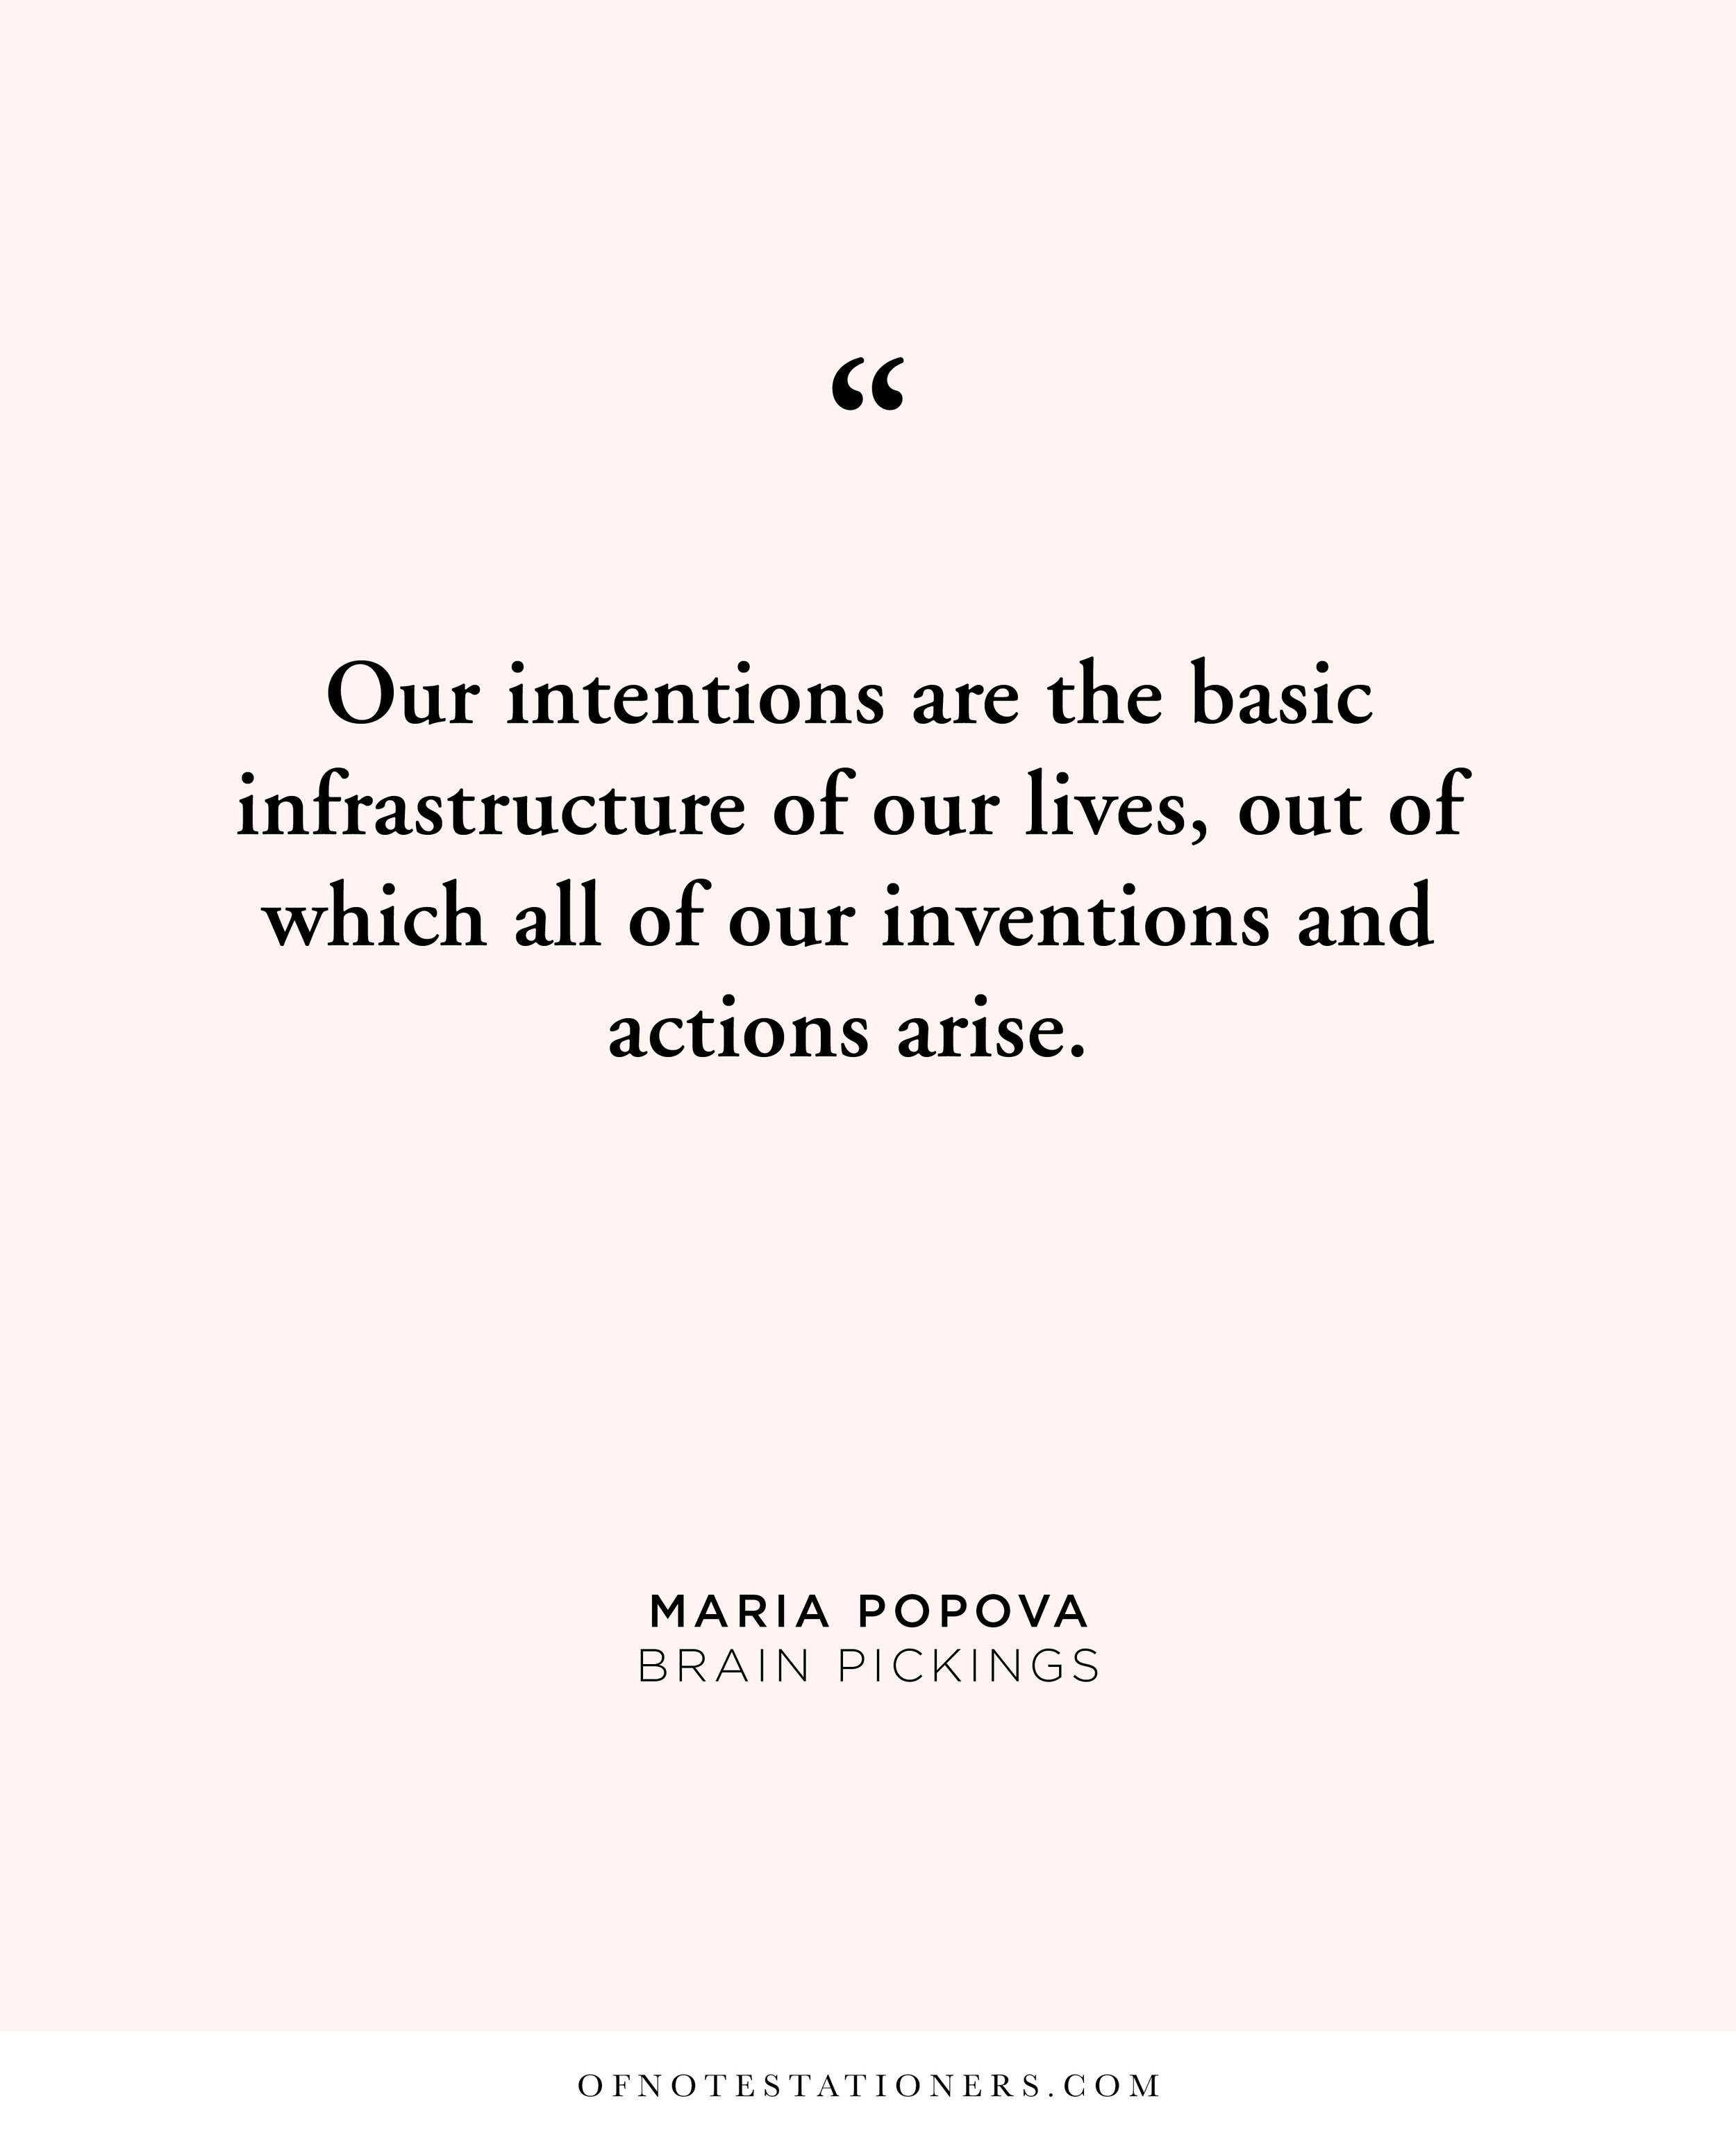 Maria Popova Intention | Of Note Stationers